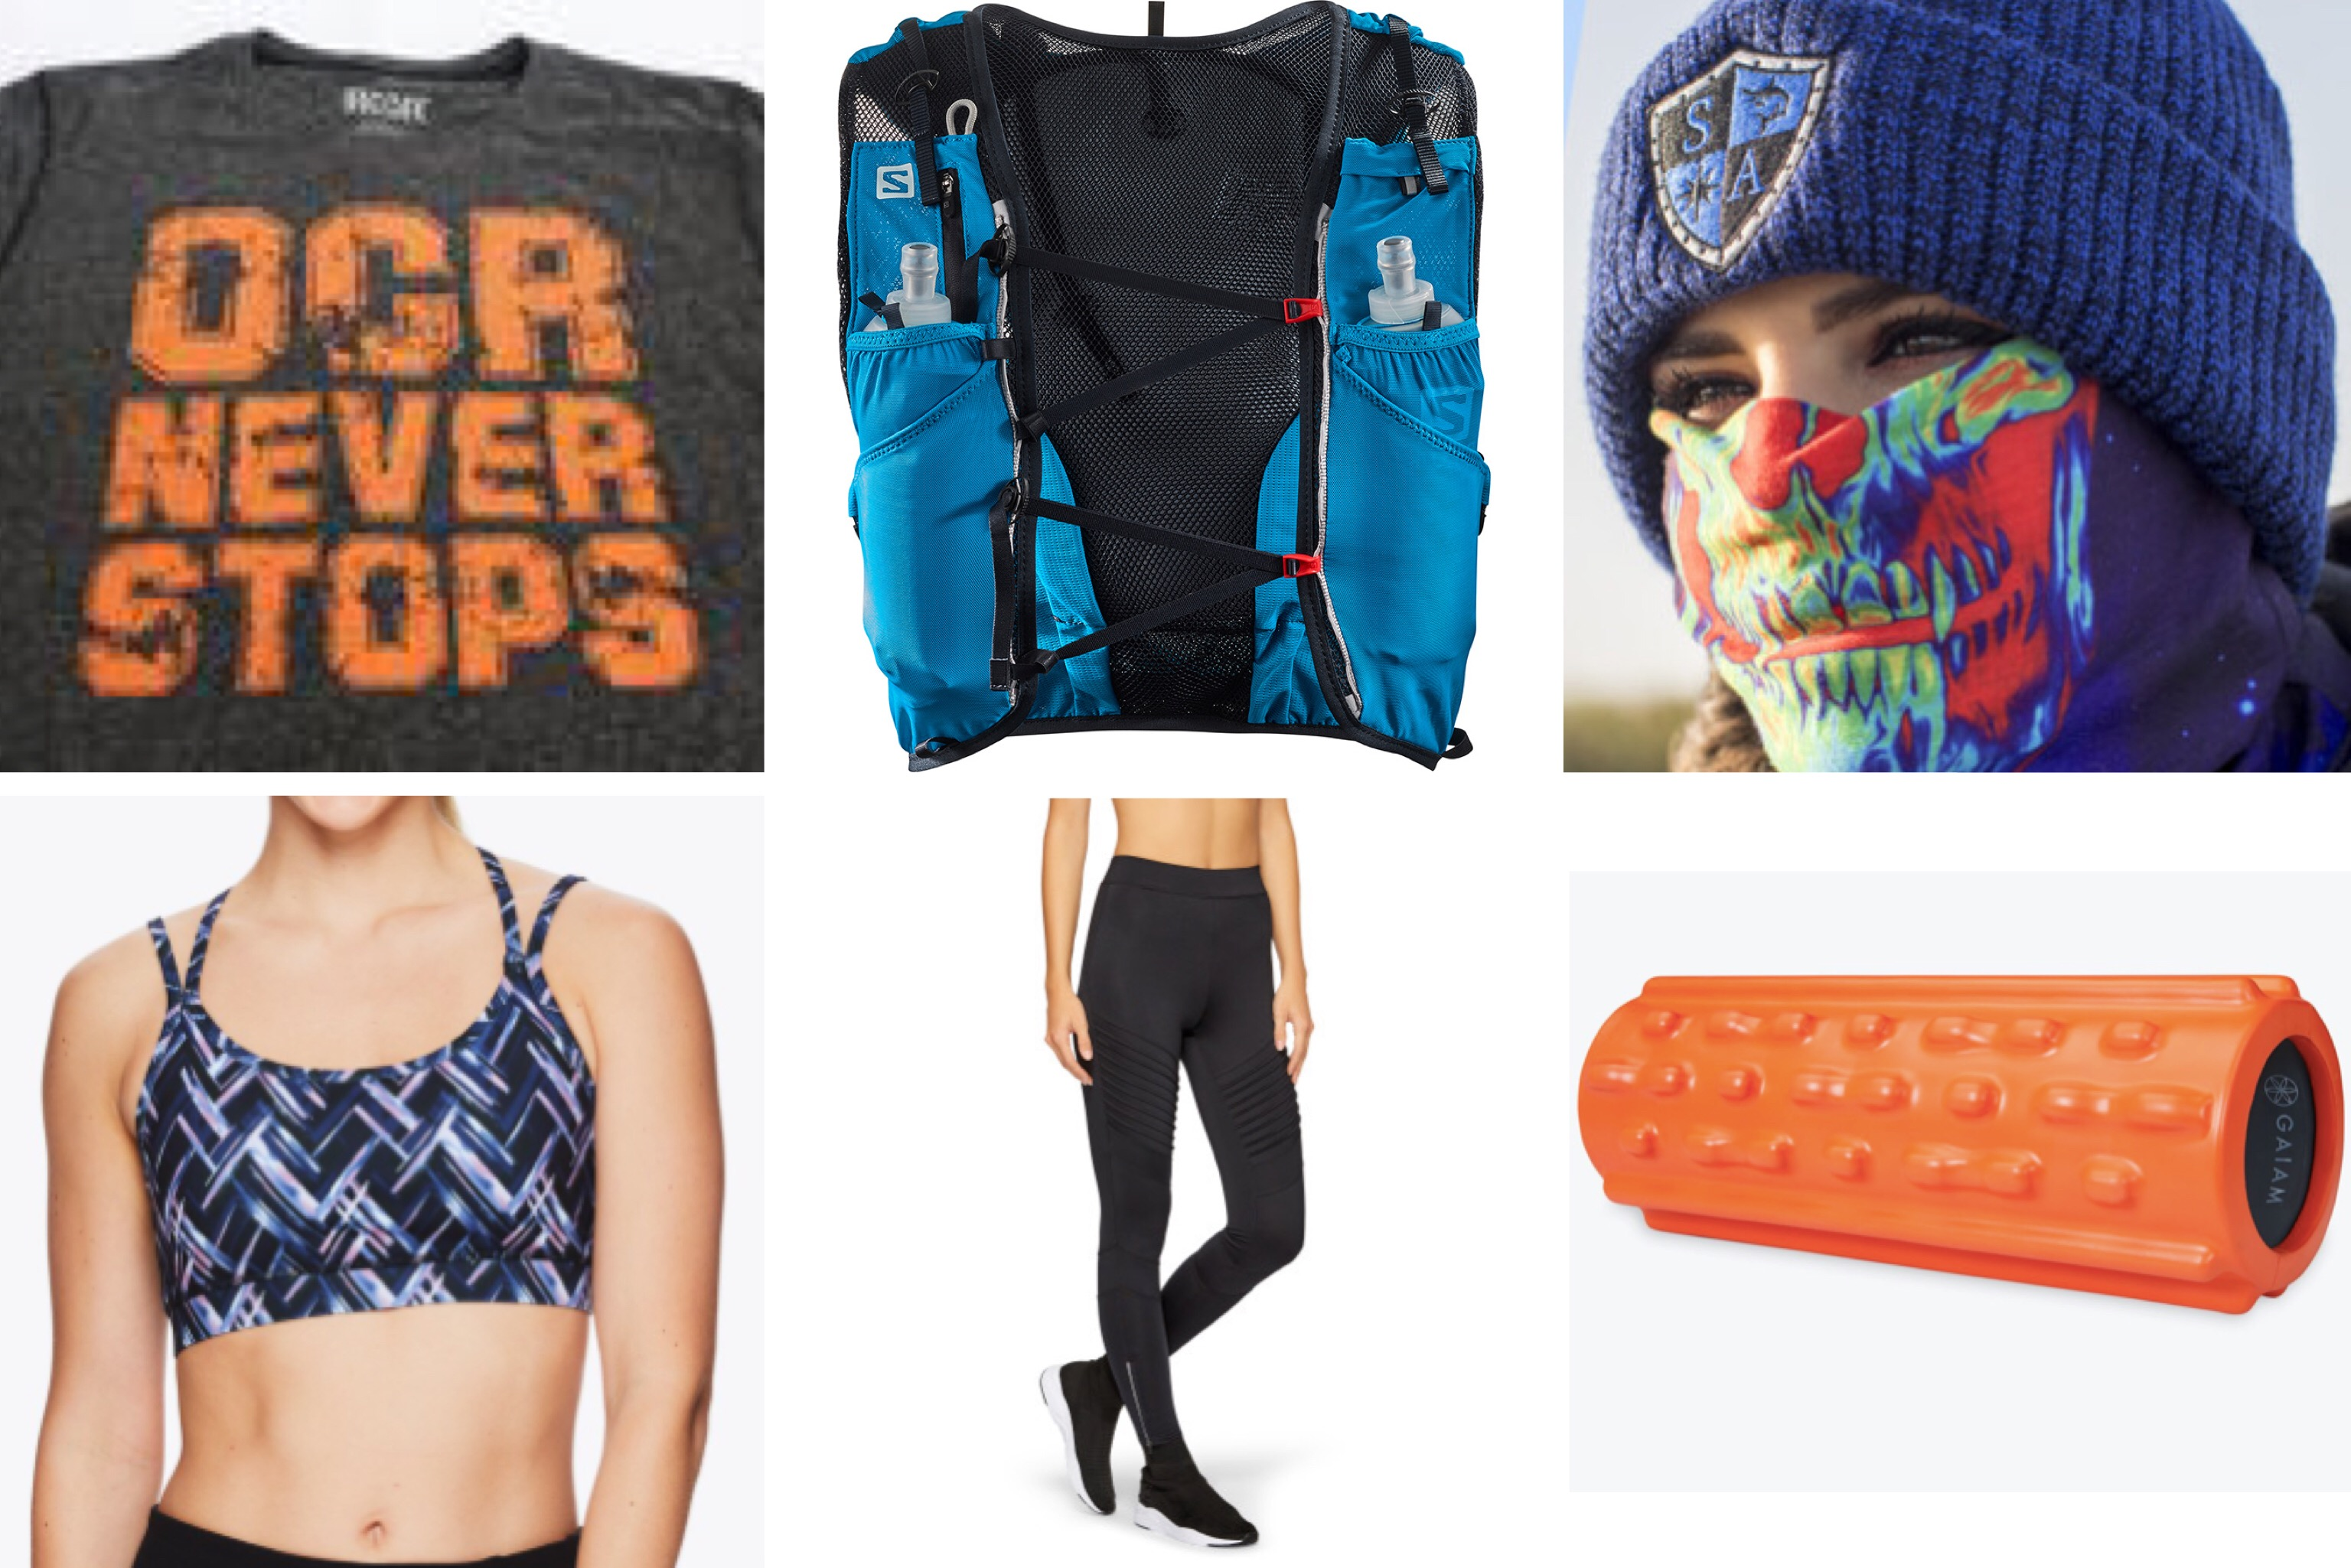 hardkour performance, gaiam, ocr, pamela price, sam Edelman, salomon